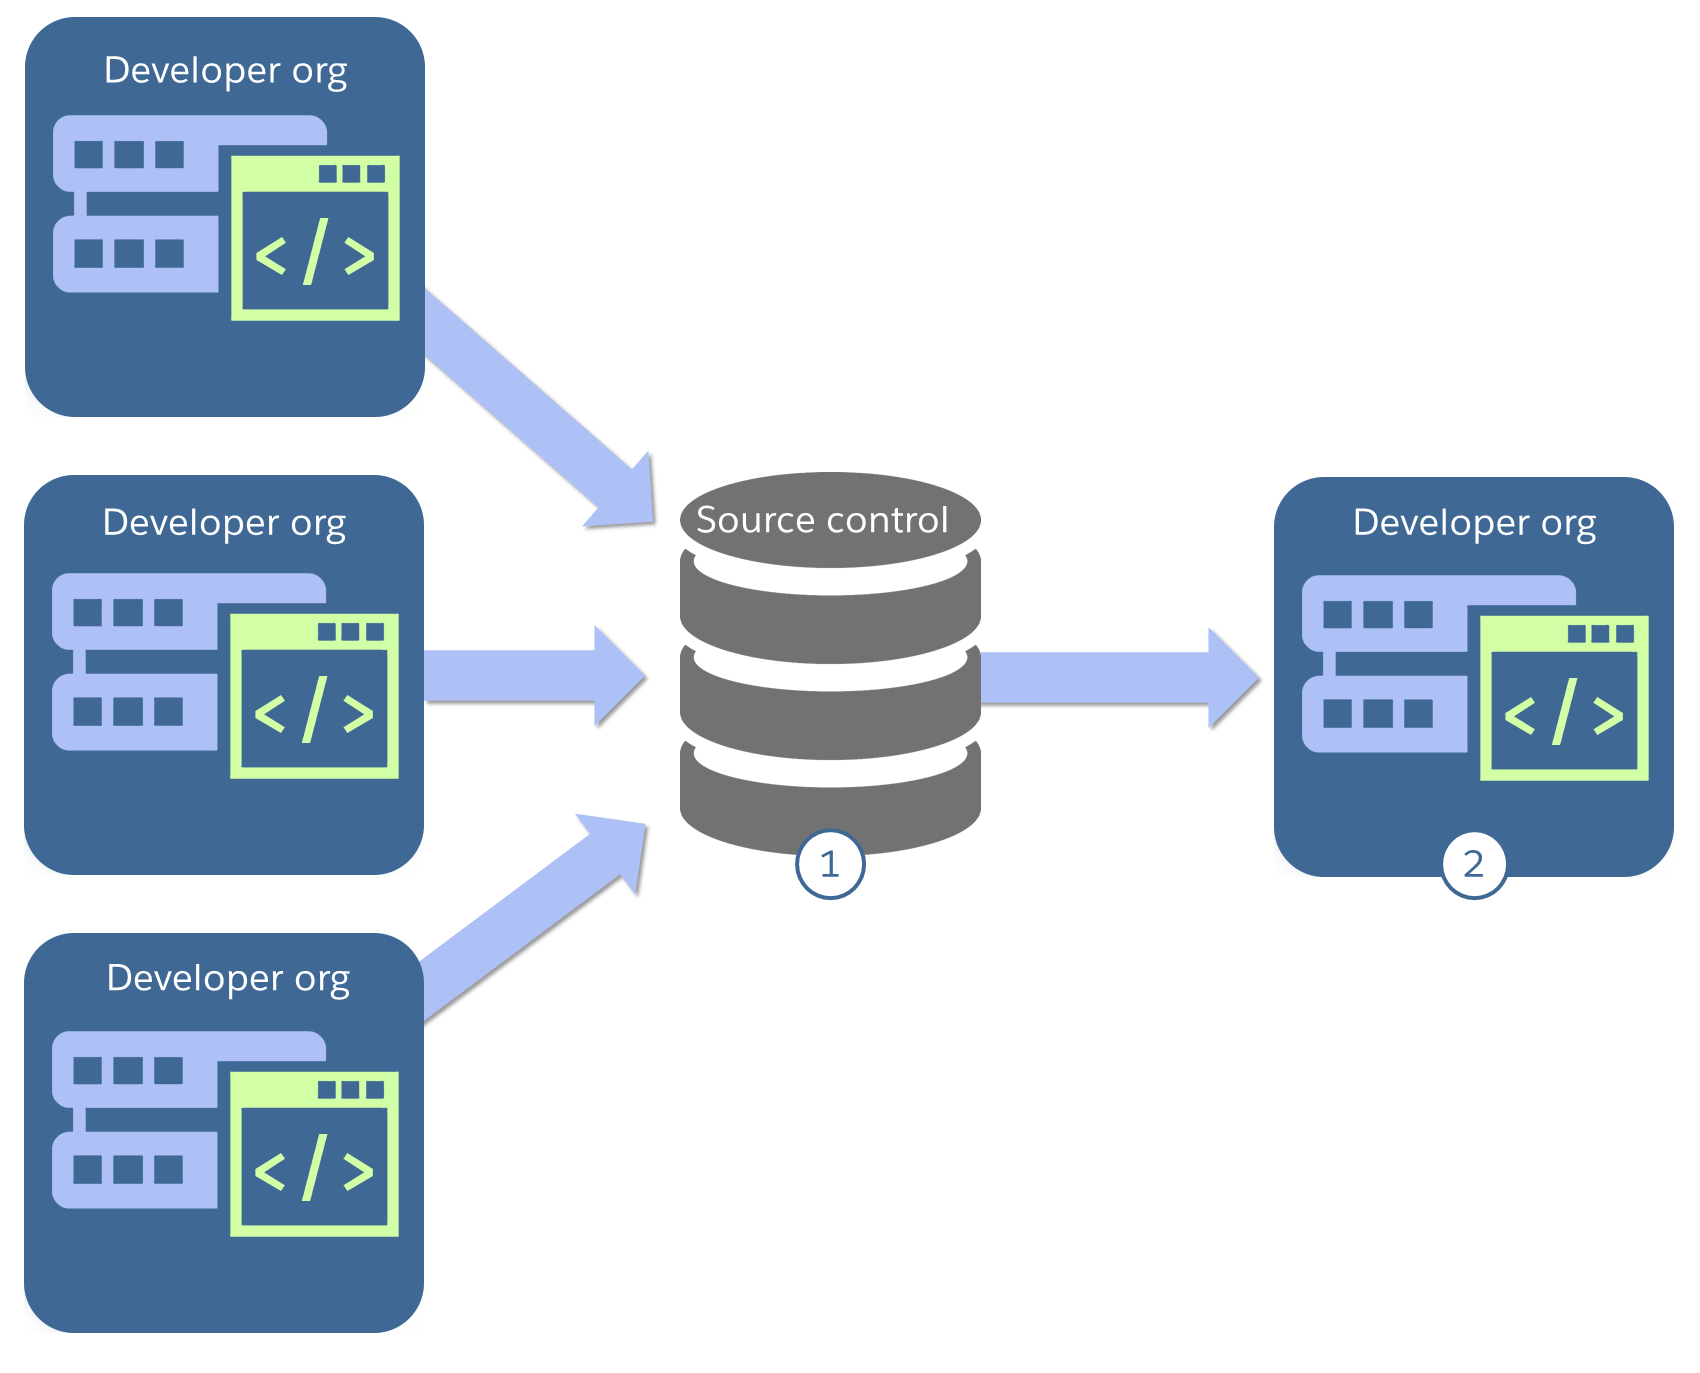 Diagram with developer orgs feeding to source control feeding to a single developer org